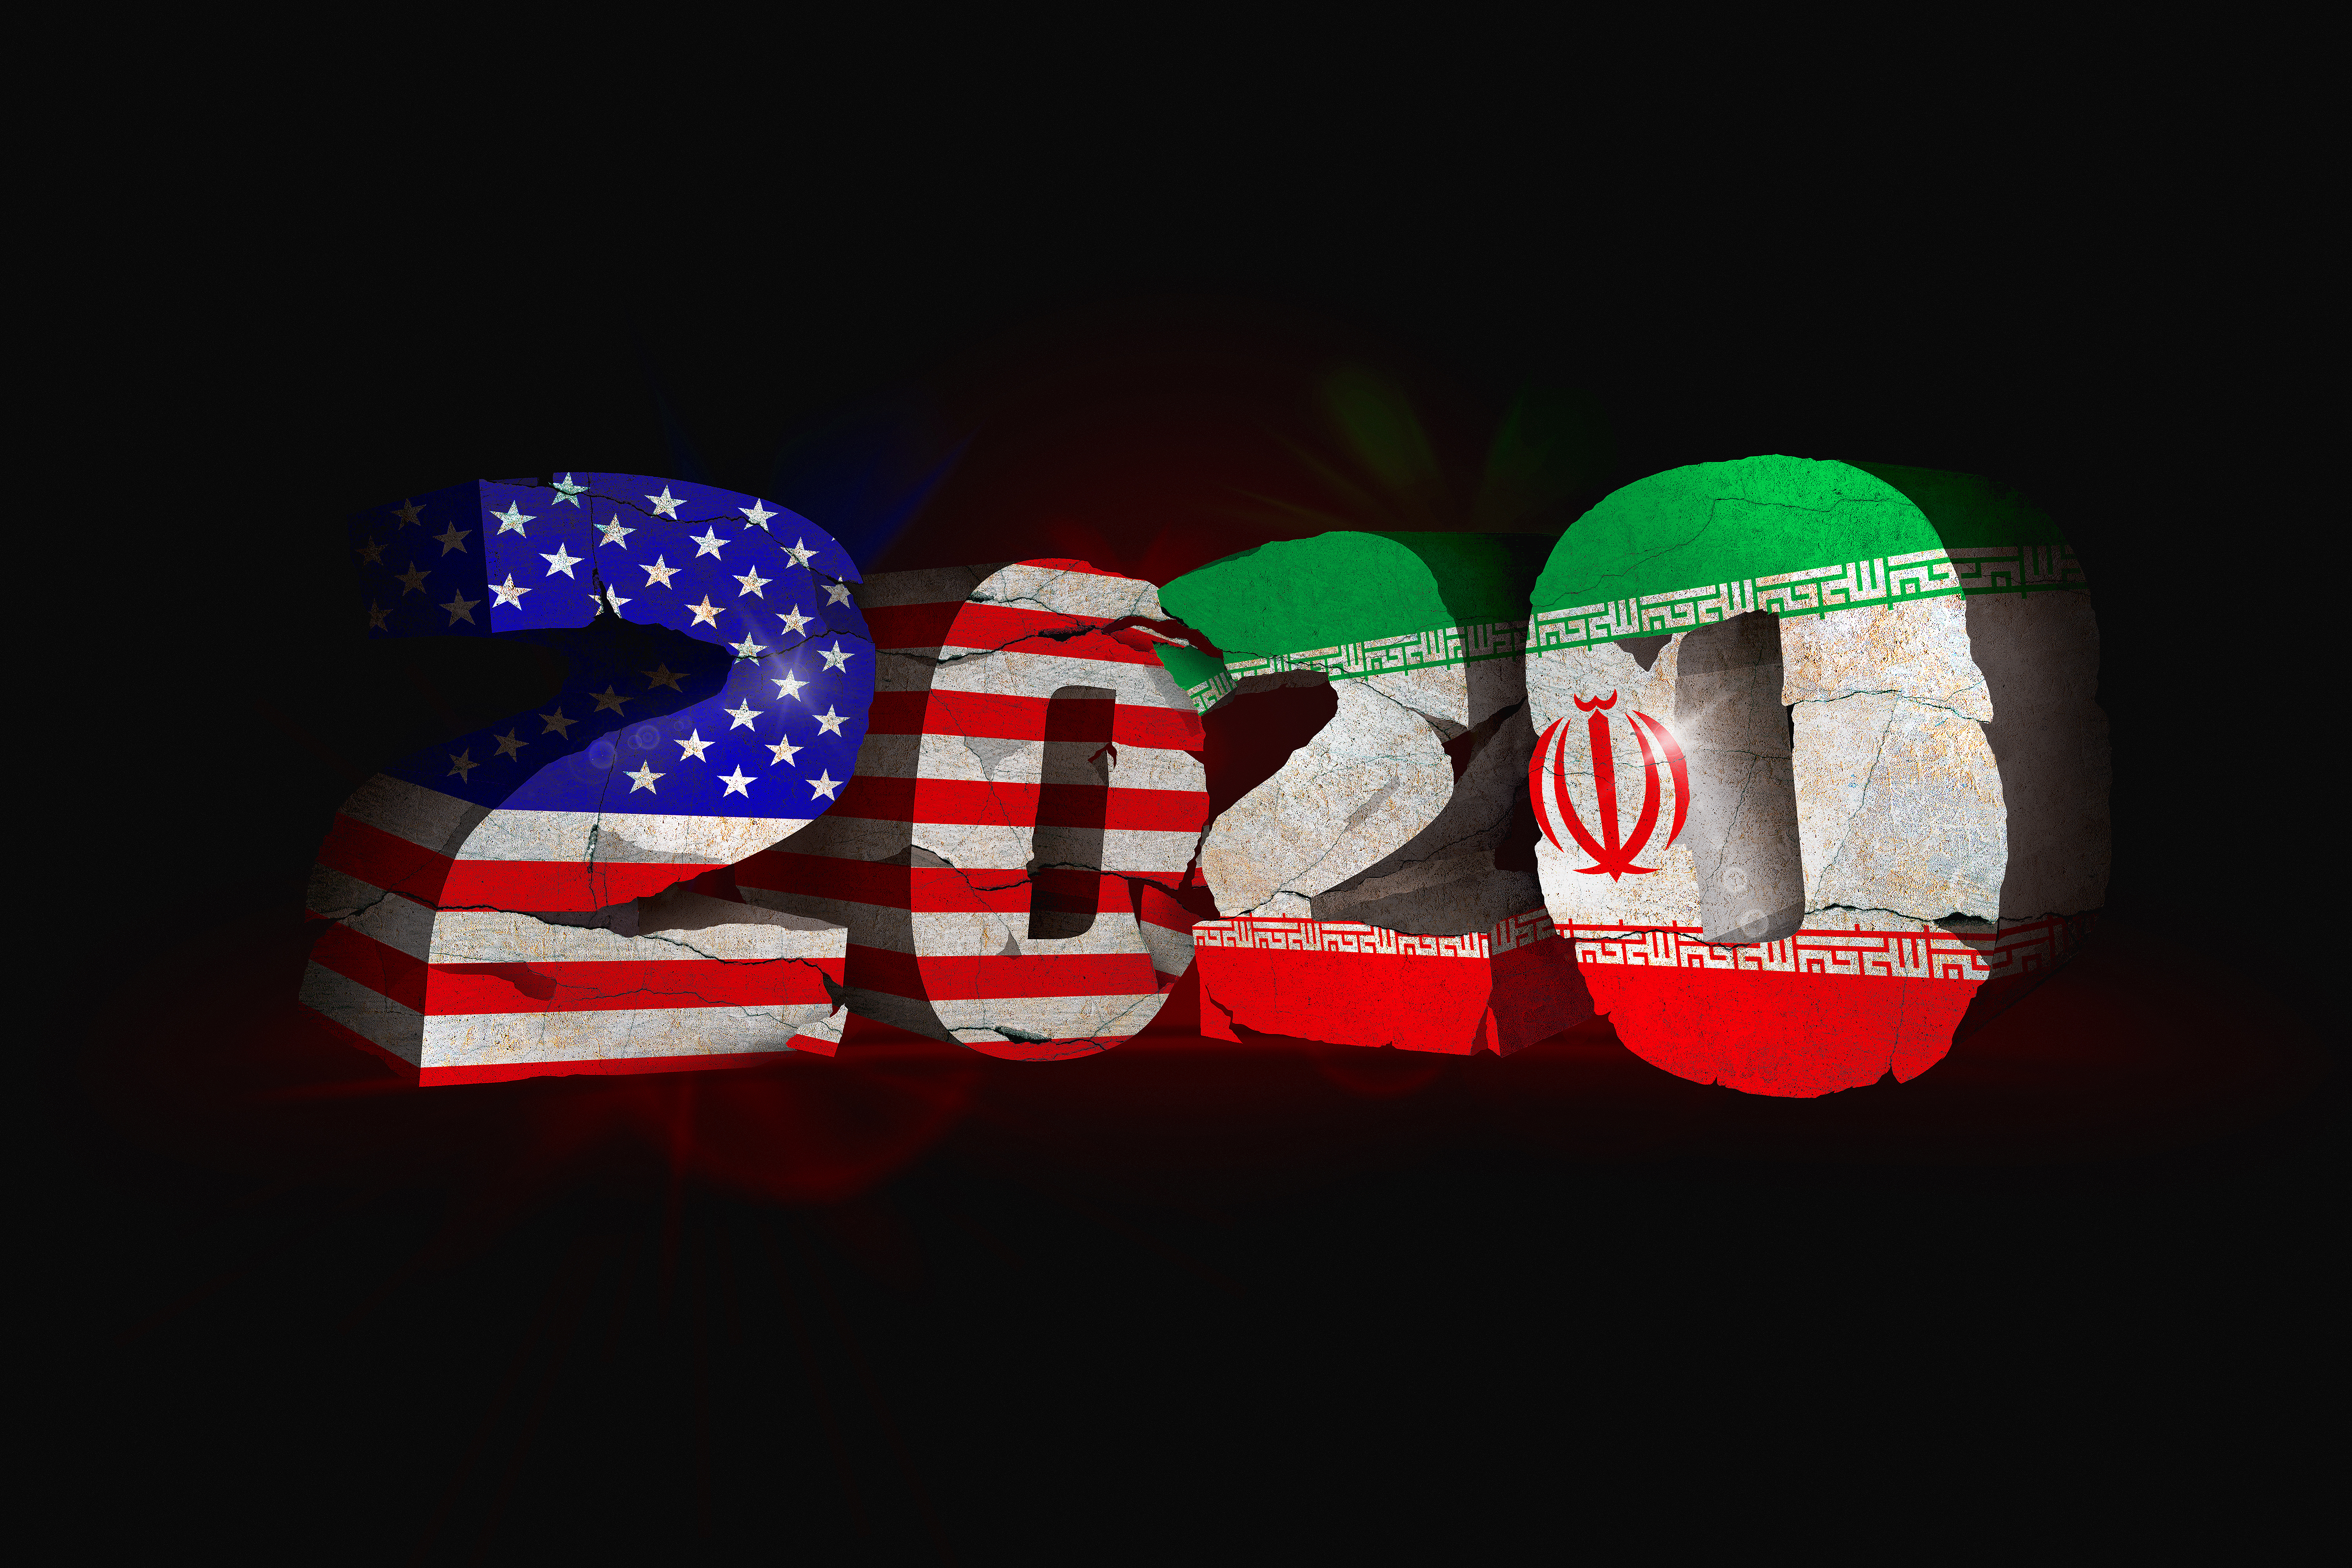 The 4 strategic goals behind recent Iranian cyber attacks